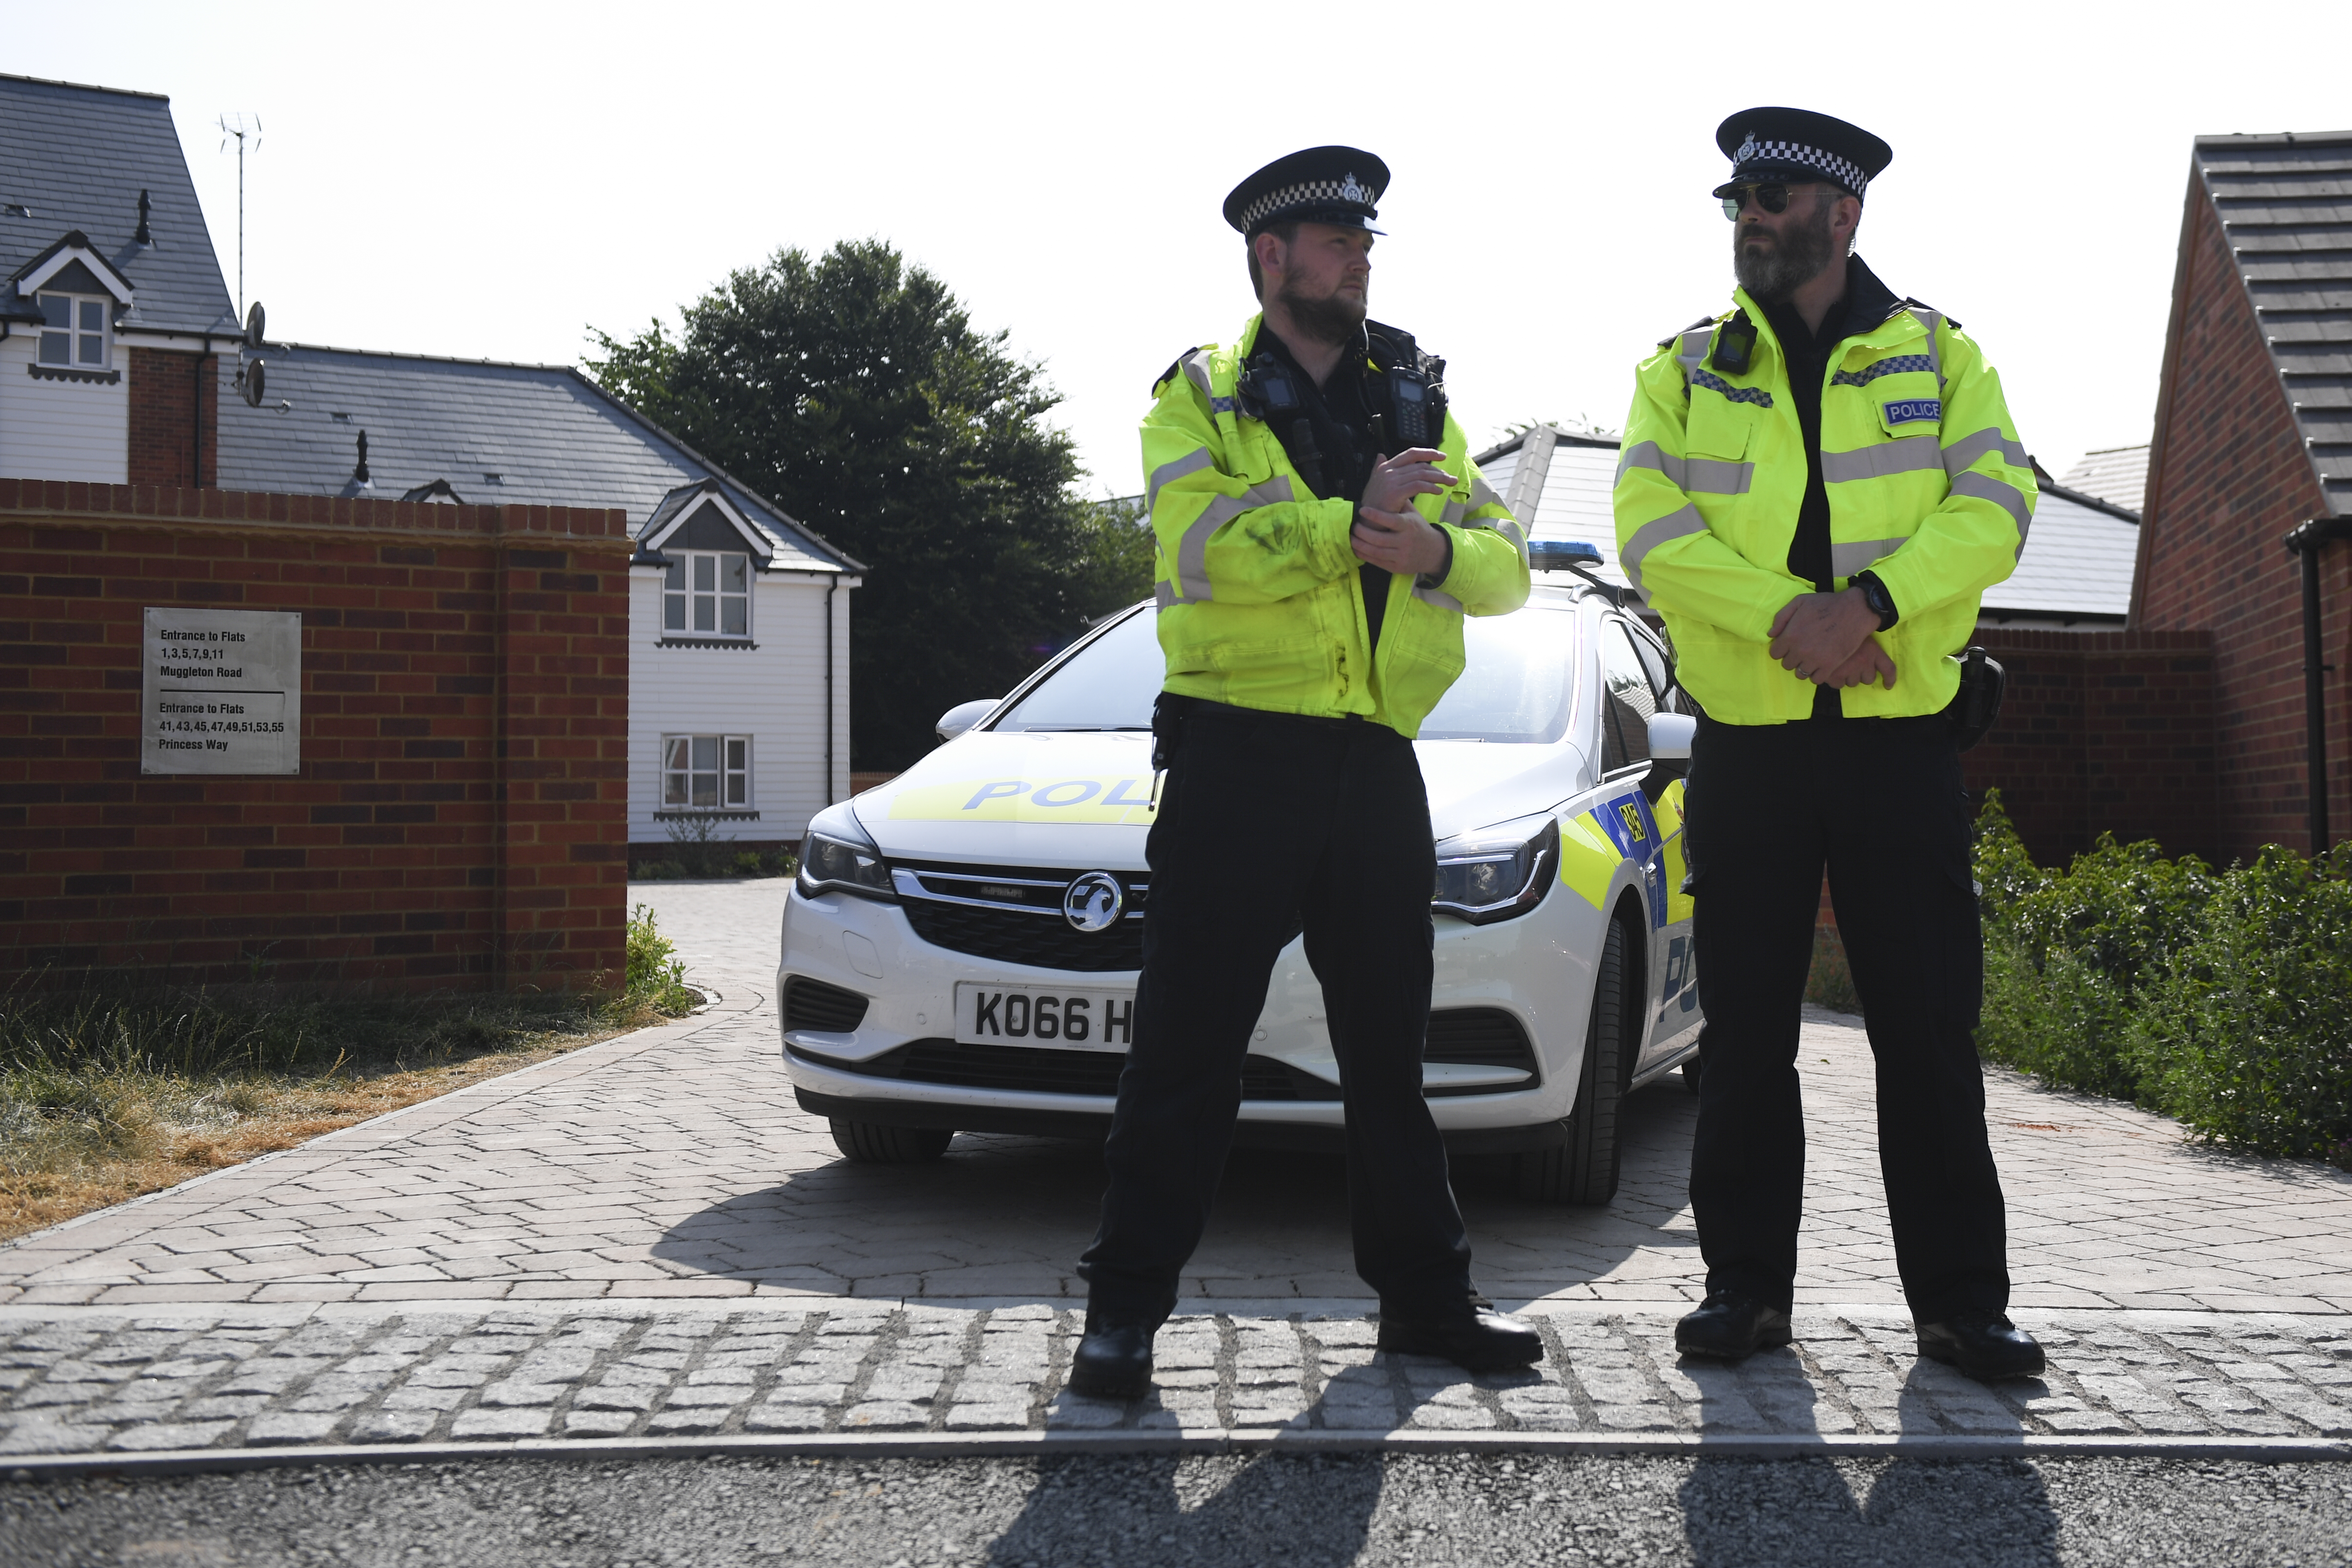 Police officers are seen standing guard outside a residential address in Amesbury, southern England, on July 5, 2018 where police reported a man and woman were found unconscious in circumstances that sparked a major incident after contact with what was later identified as the nerve agent Novichok. British police scrambled on July 5, to determine how a couple were exposed to the same nerve agent, Novichok, used on a former Russian spy earlier this year, leaving them critically ill. The couple were taken ill on Saturday in Amesbury, close to the city of Salisbury, where former double agent Sergei Skripal and his daughter Yulia were found slumped on a bench on March 4, in an incident that sparked a diplomatic crisis with Russia. / AFP PHOTO / Chris J Ratcliffe /